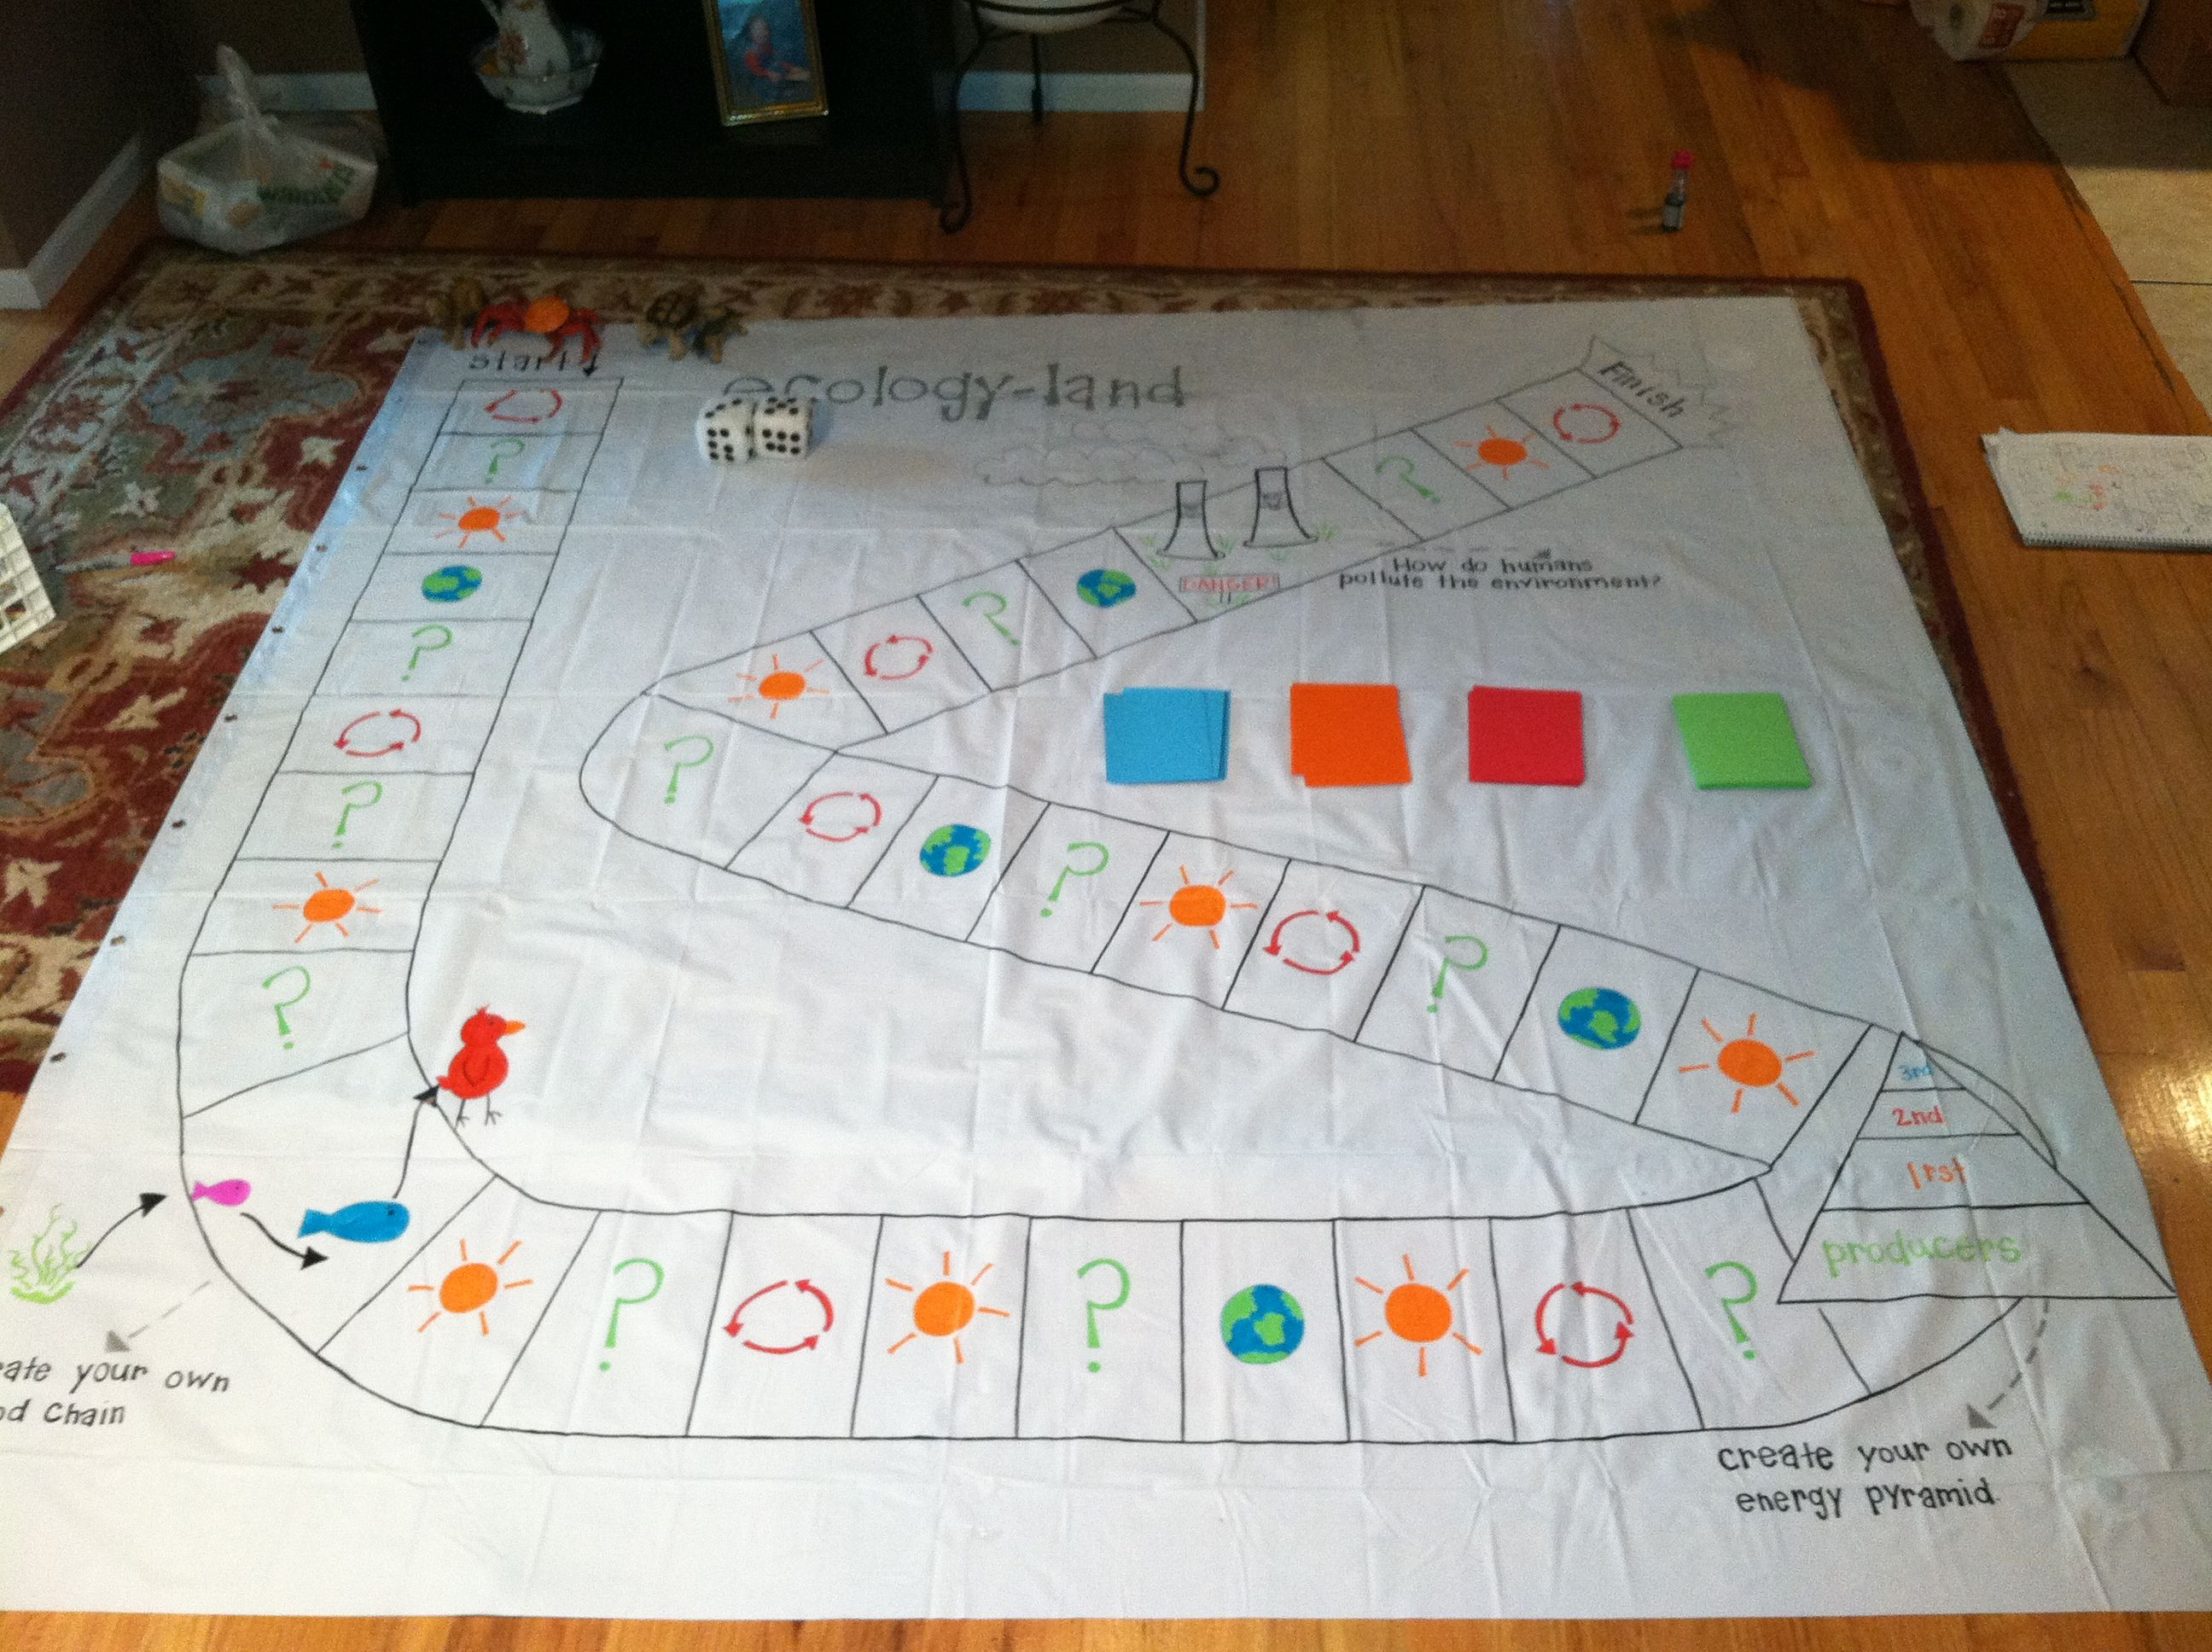 Make Learning Fun Create Life Size Game Boards As Lessons Cheap And Easy Use A Plain Colo Funny Baby Shower Games Modern Baby Shower Games Baby Shower Funny